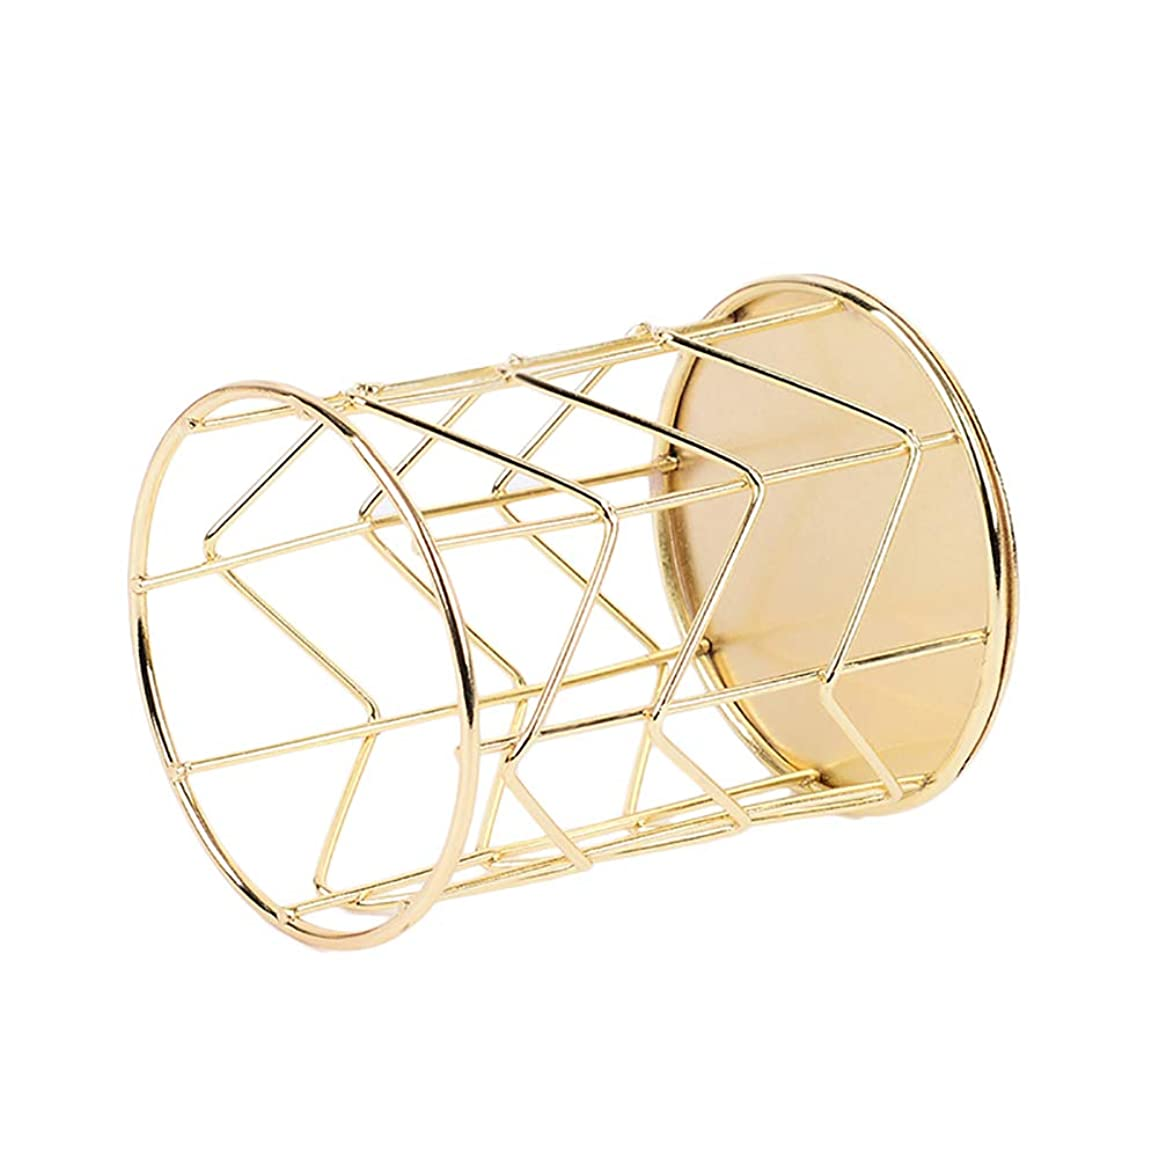 Dylandy Fashion Creative Pen Holder Gold Storage Box Student Office Supplies Multifunctional Wrought Iron Pen Holder Cosmetic Brush Tube